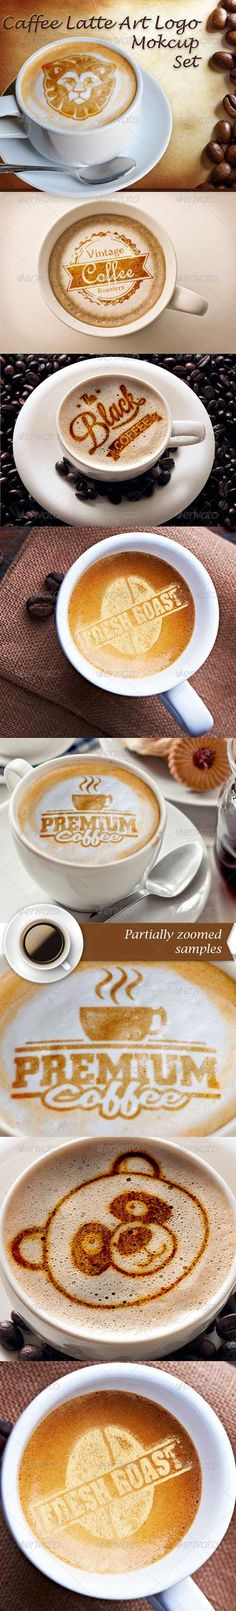 Caffee Latte Art Logo Mockup Set 8570523 » Free Special GFX Posts Vectors AEP Projects PSD Web Templates